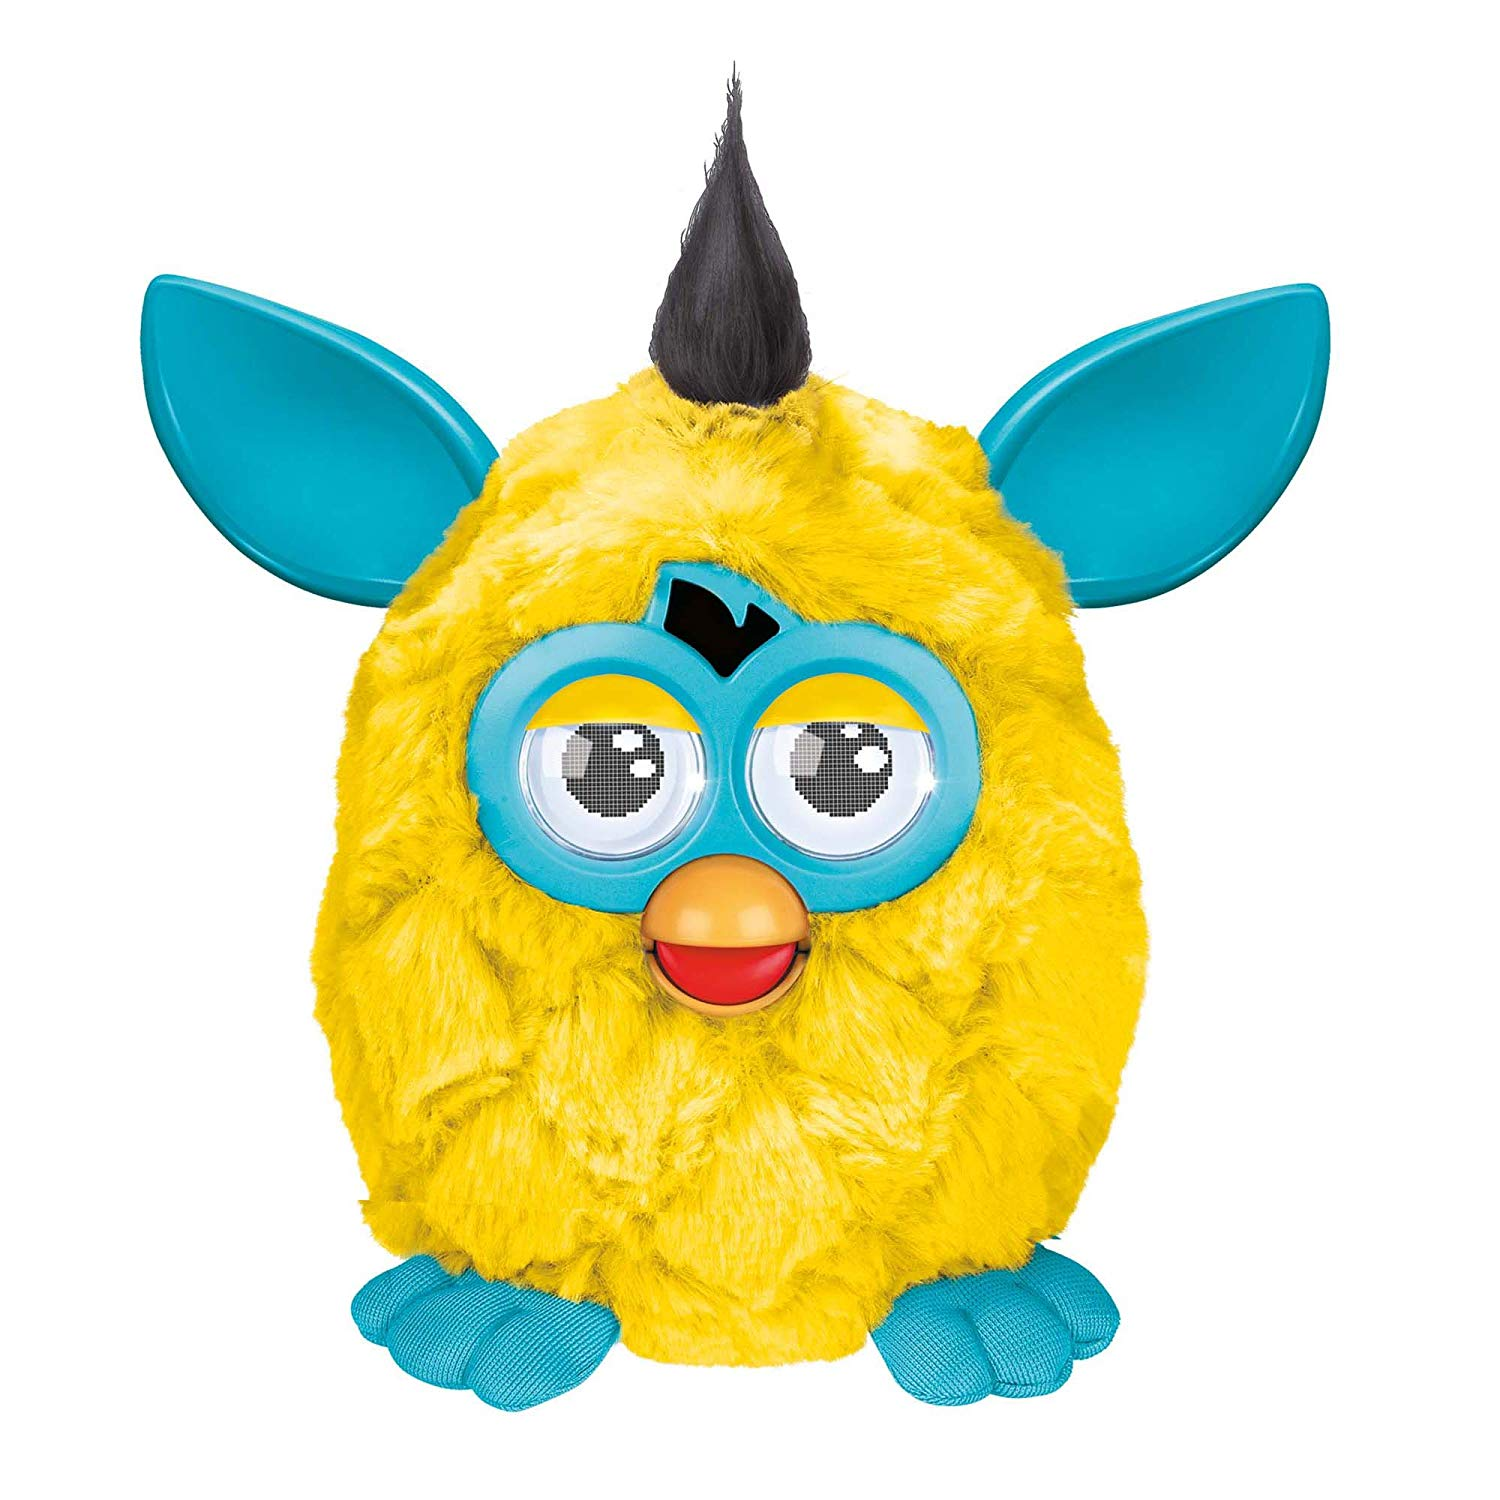 Furby Plush, Yellow Teal by